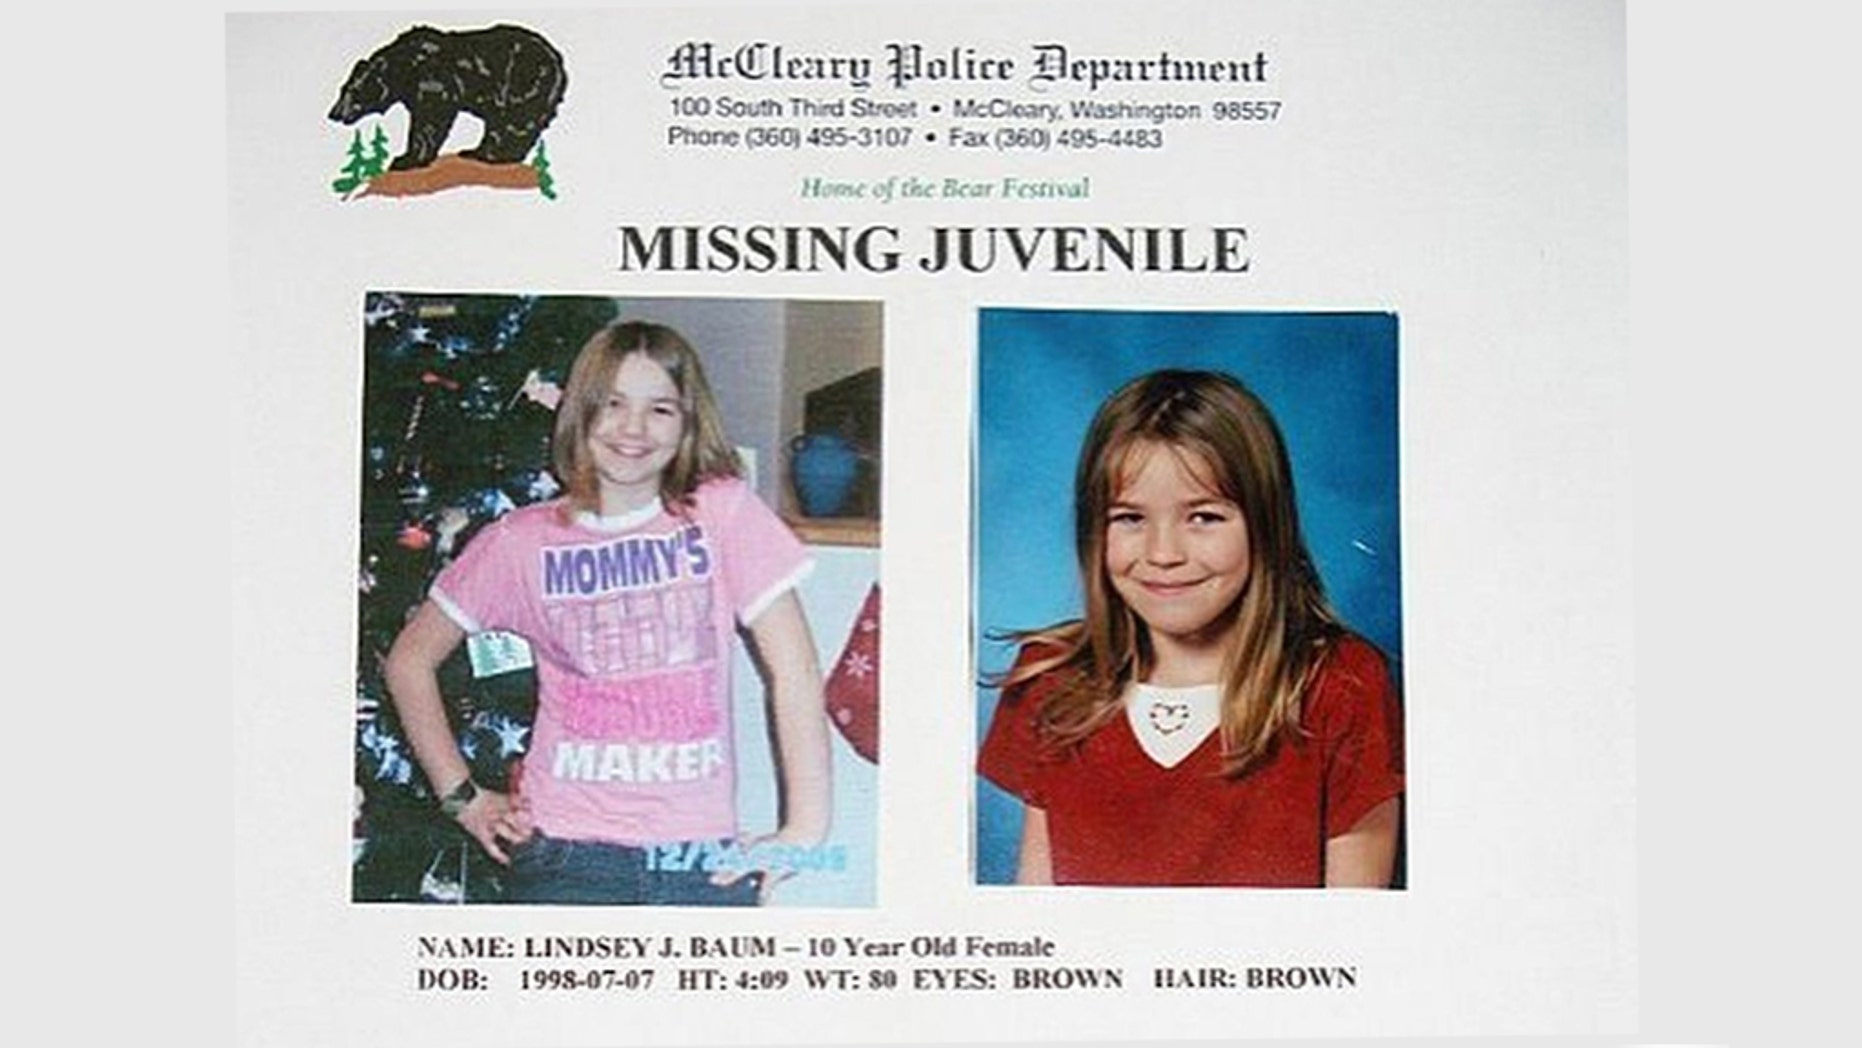 Human remains discovered last fall in eastern Washington have been identified as those of Lindsey Baum, a 10-year-old girl who went missing in 2009, The Grays Harbor County Sheriff's Office announced Thursday.